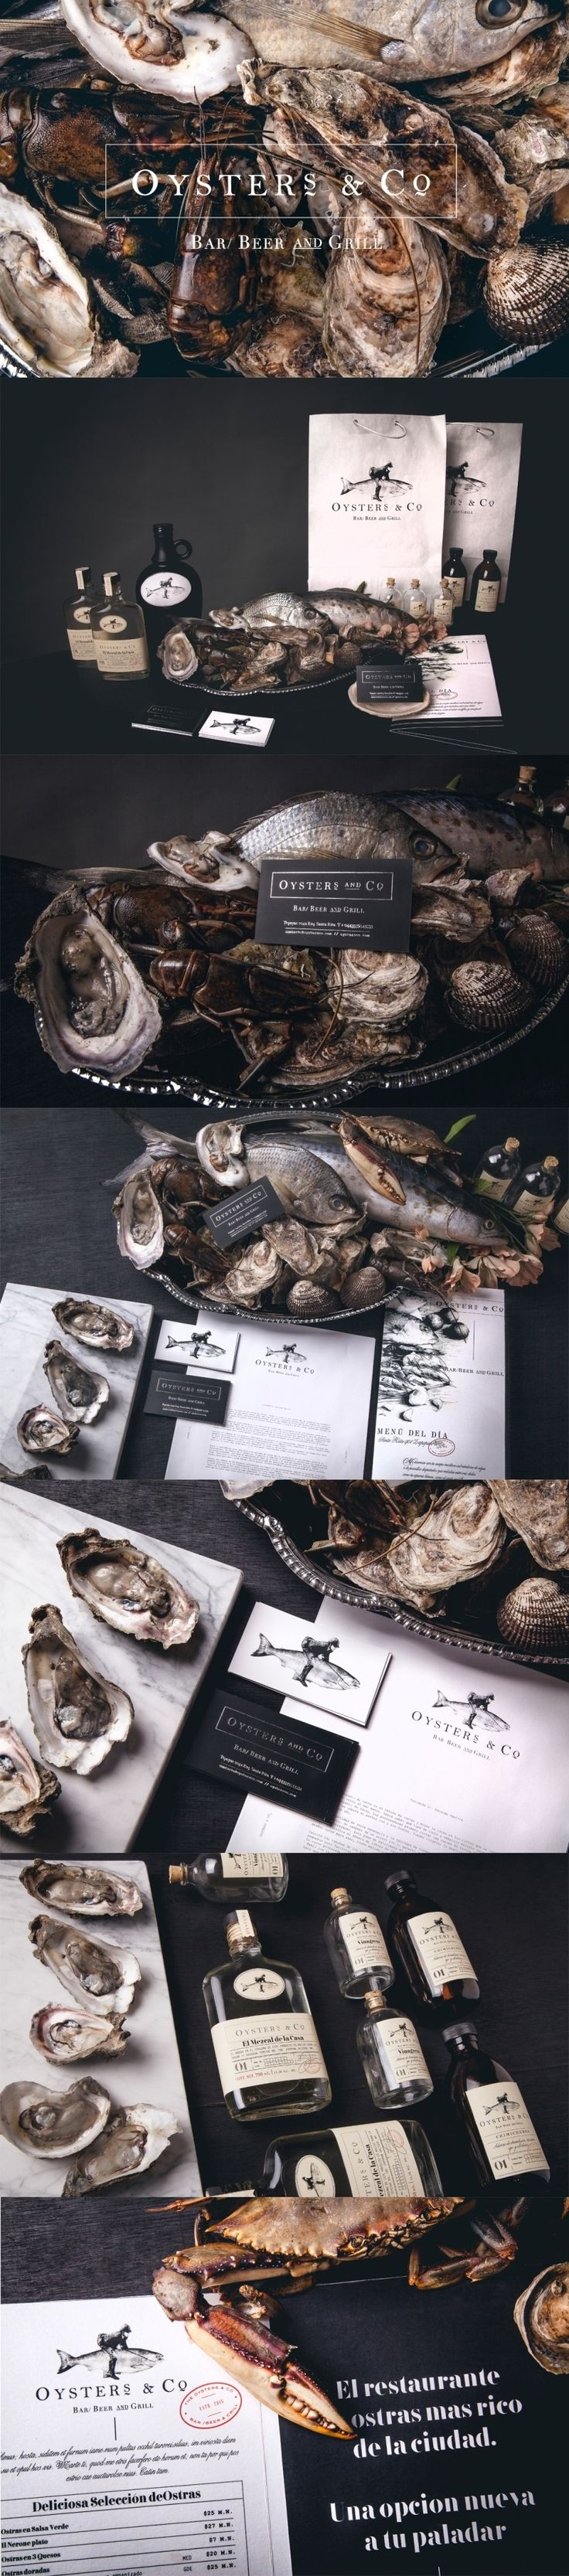 Oysters and Co. Freshness overload. (More design inspiration at www.aldenchong.com)